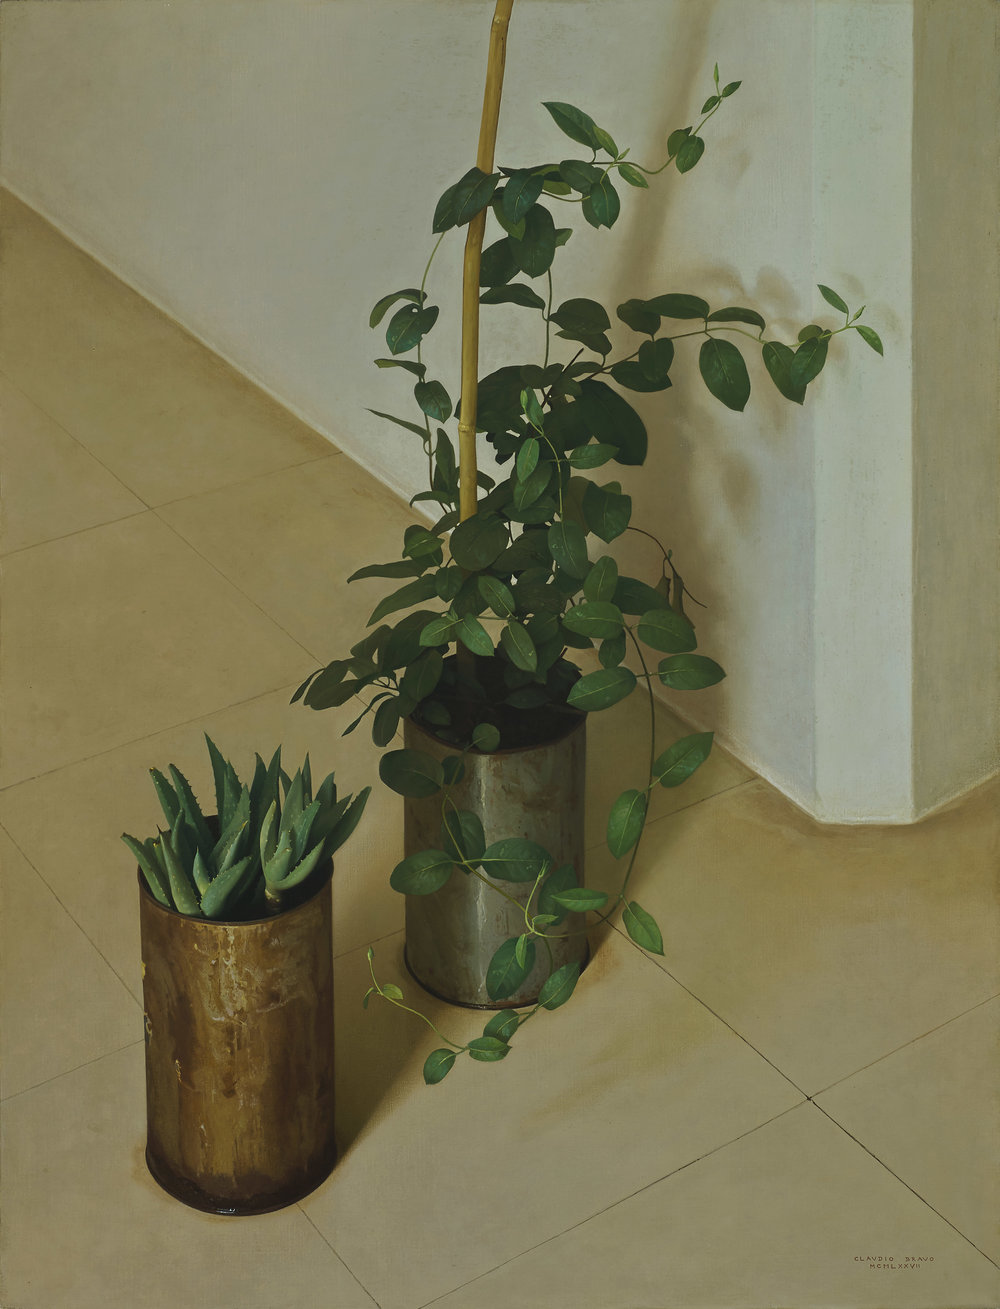 Claudio Bravo  (1936-2011)  Dos Plantas , 1977 oil on canvas 35 x 27 inches 88.9 x 68.6 centimeters